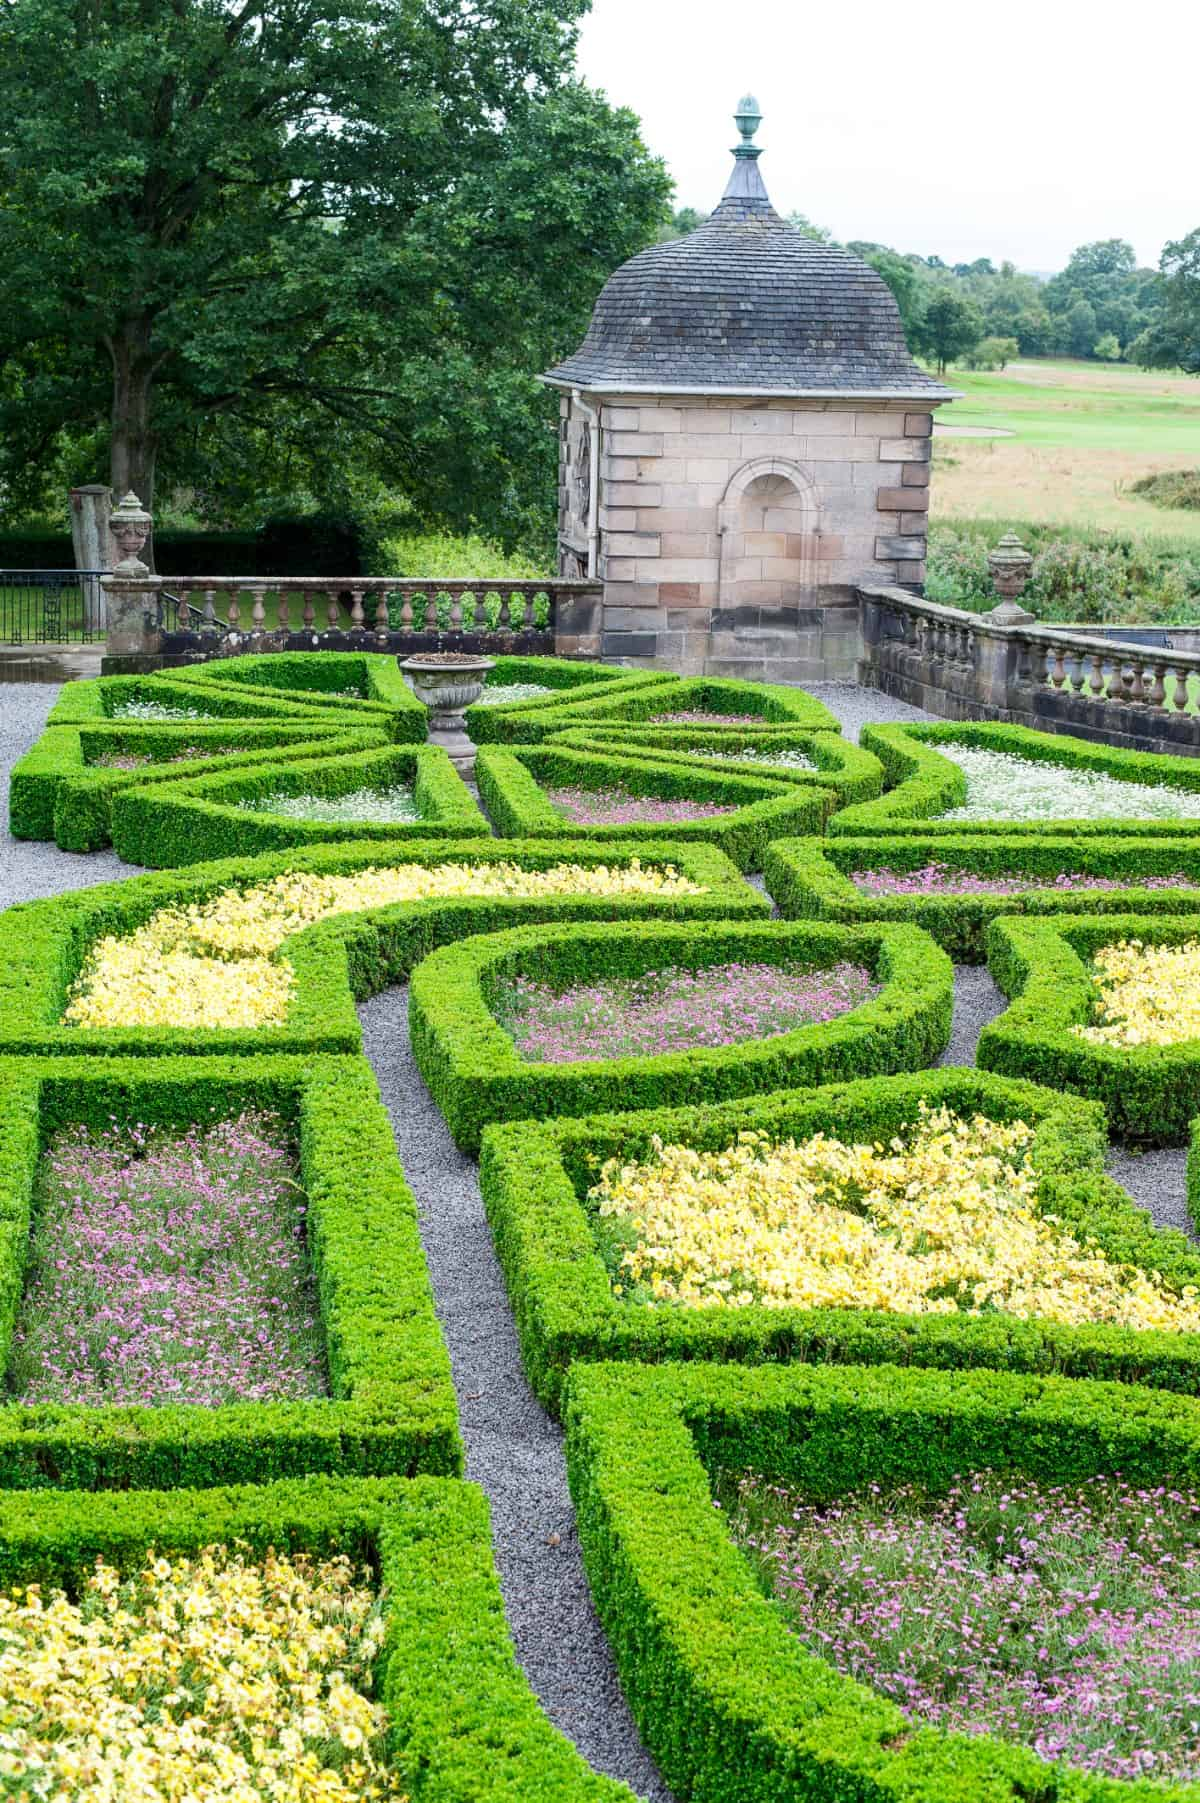 Intricate shapes in knot garden